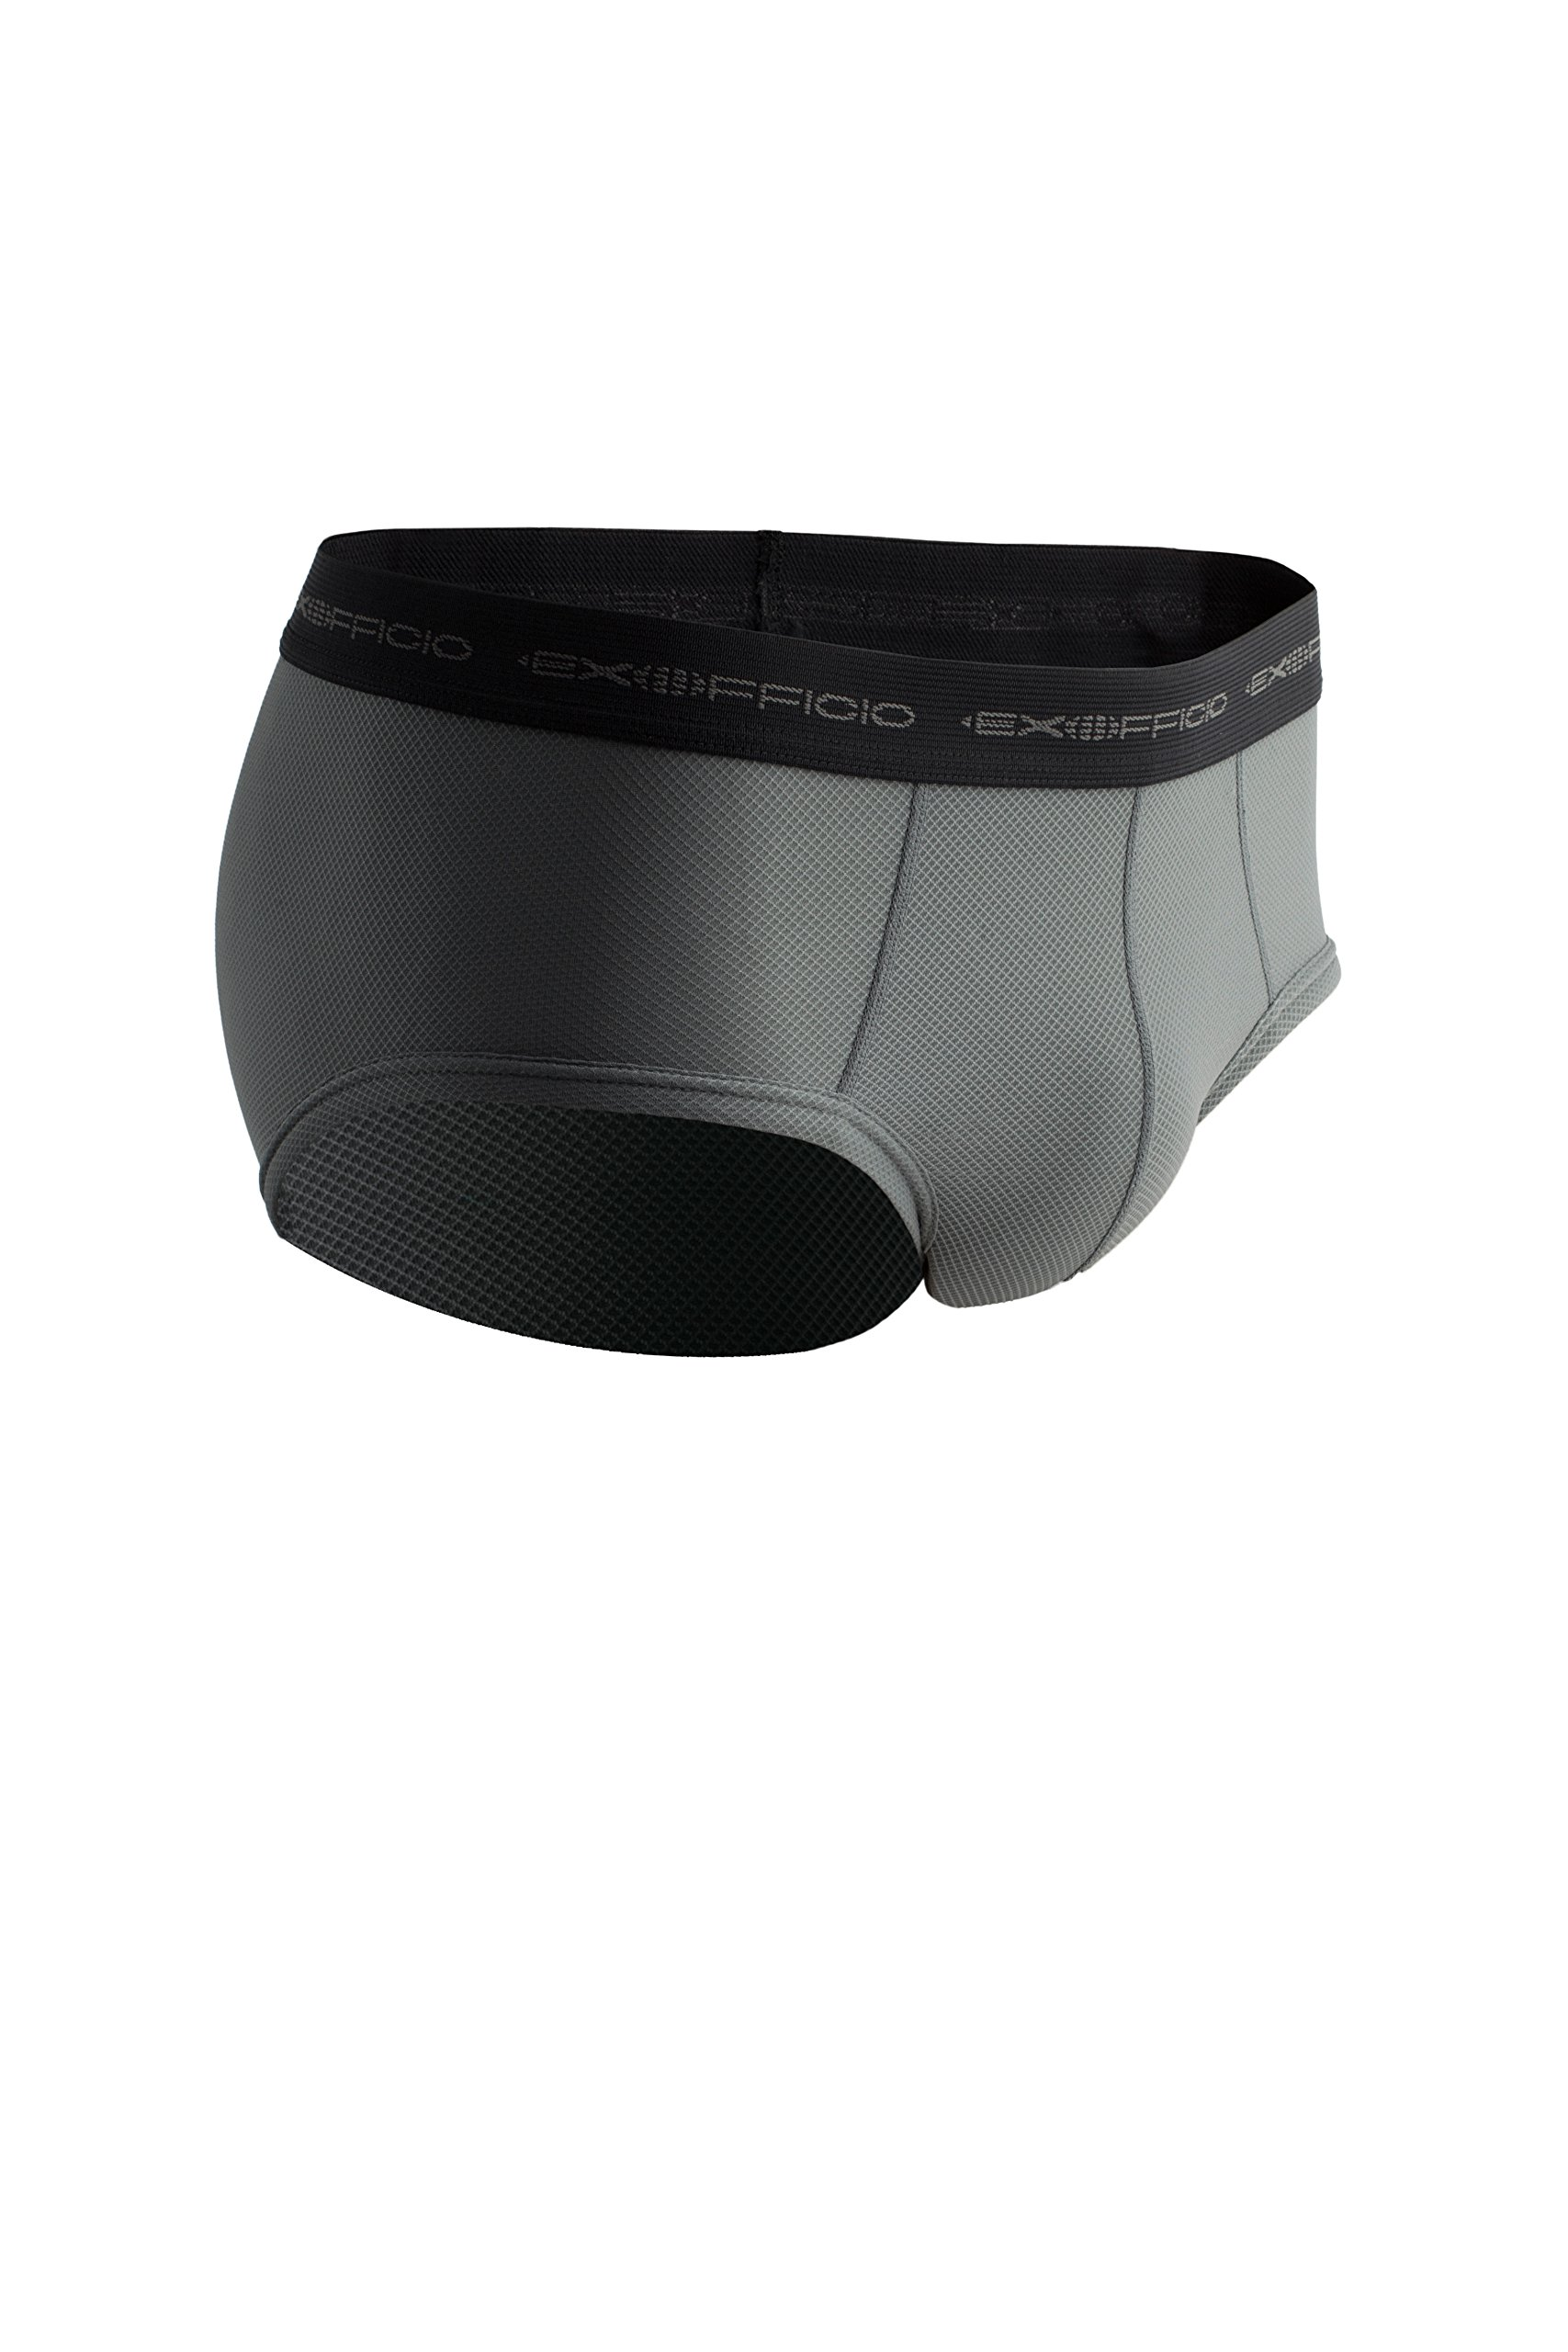 ExOfficio Men's Give-N-Go Flyless Brief, Charcoal, Medium by ExOfficio